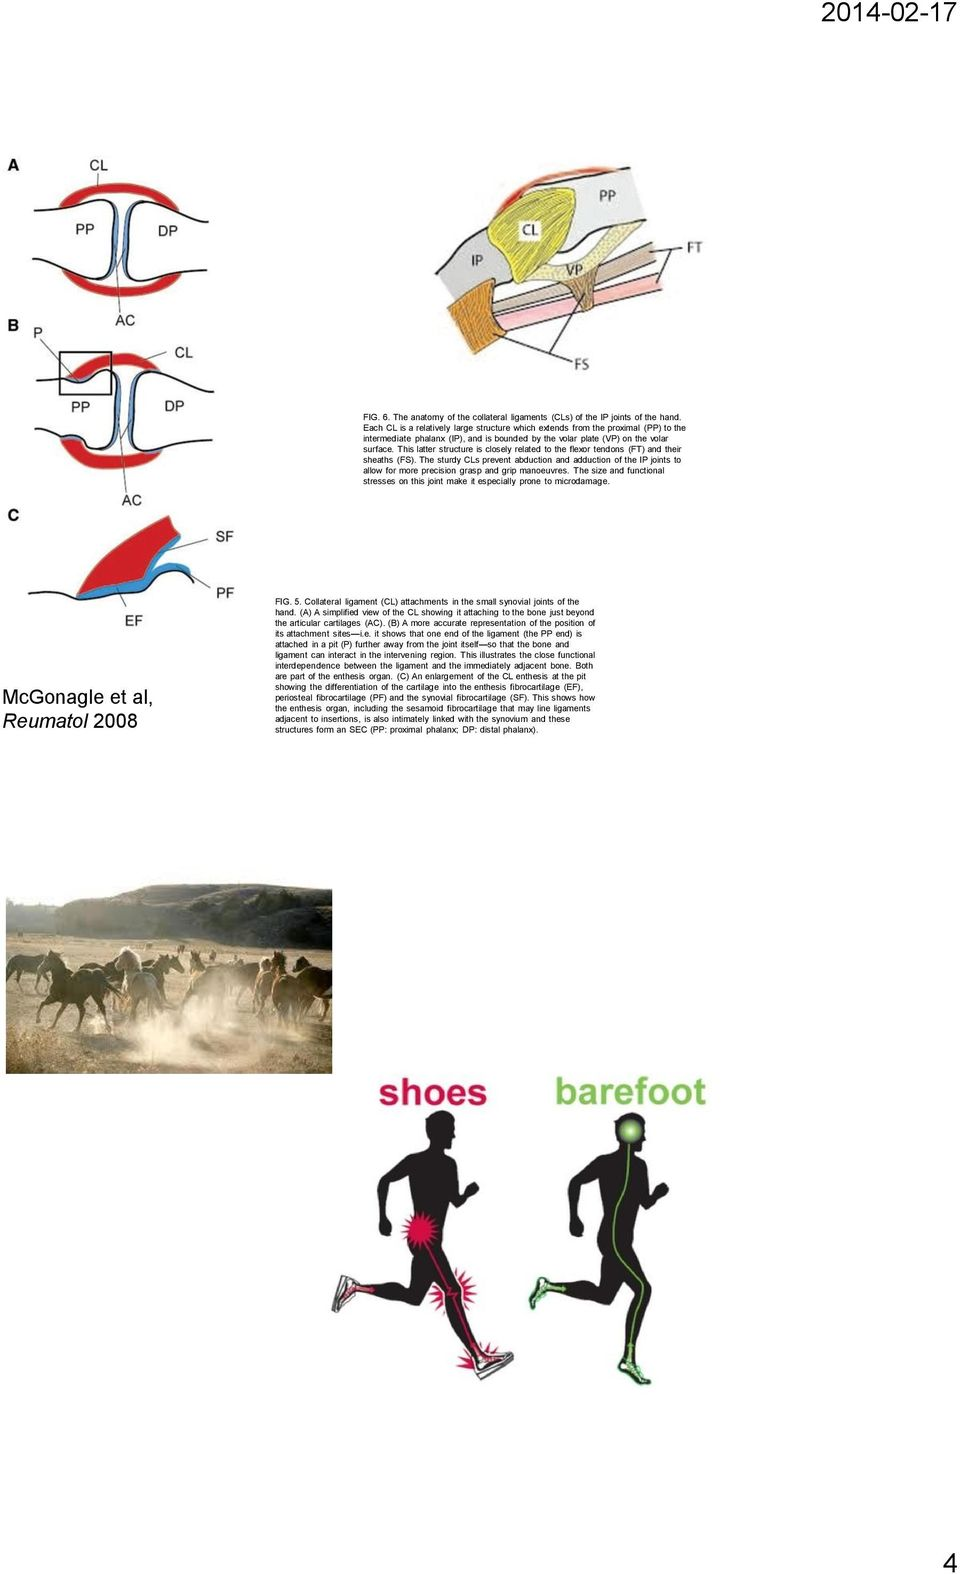 BACKGROUND PHYSIOLOGY - Kinematics of the knee